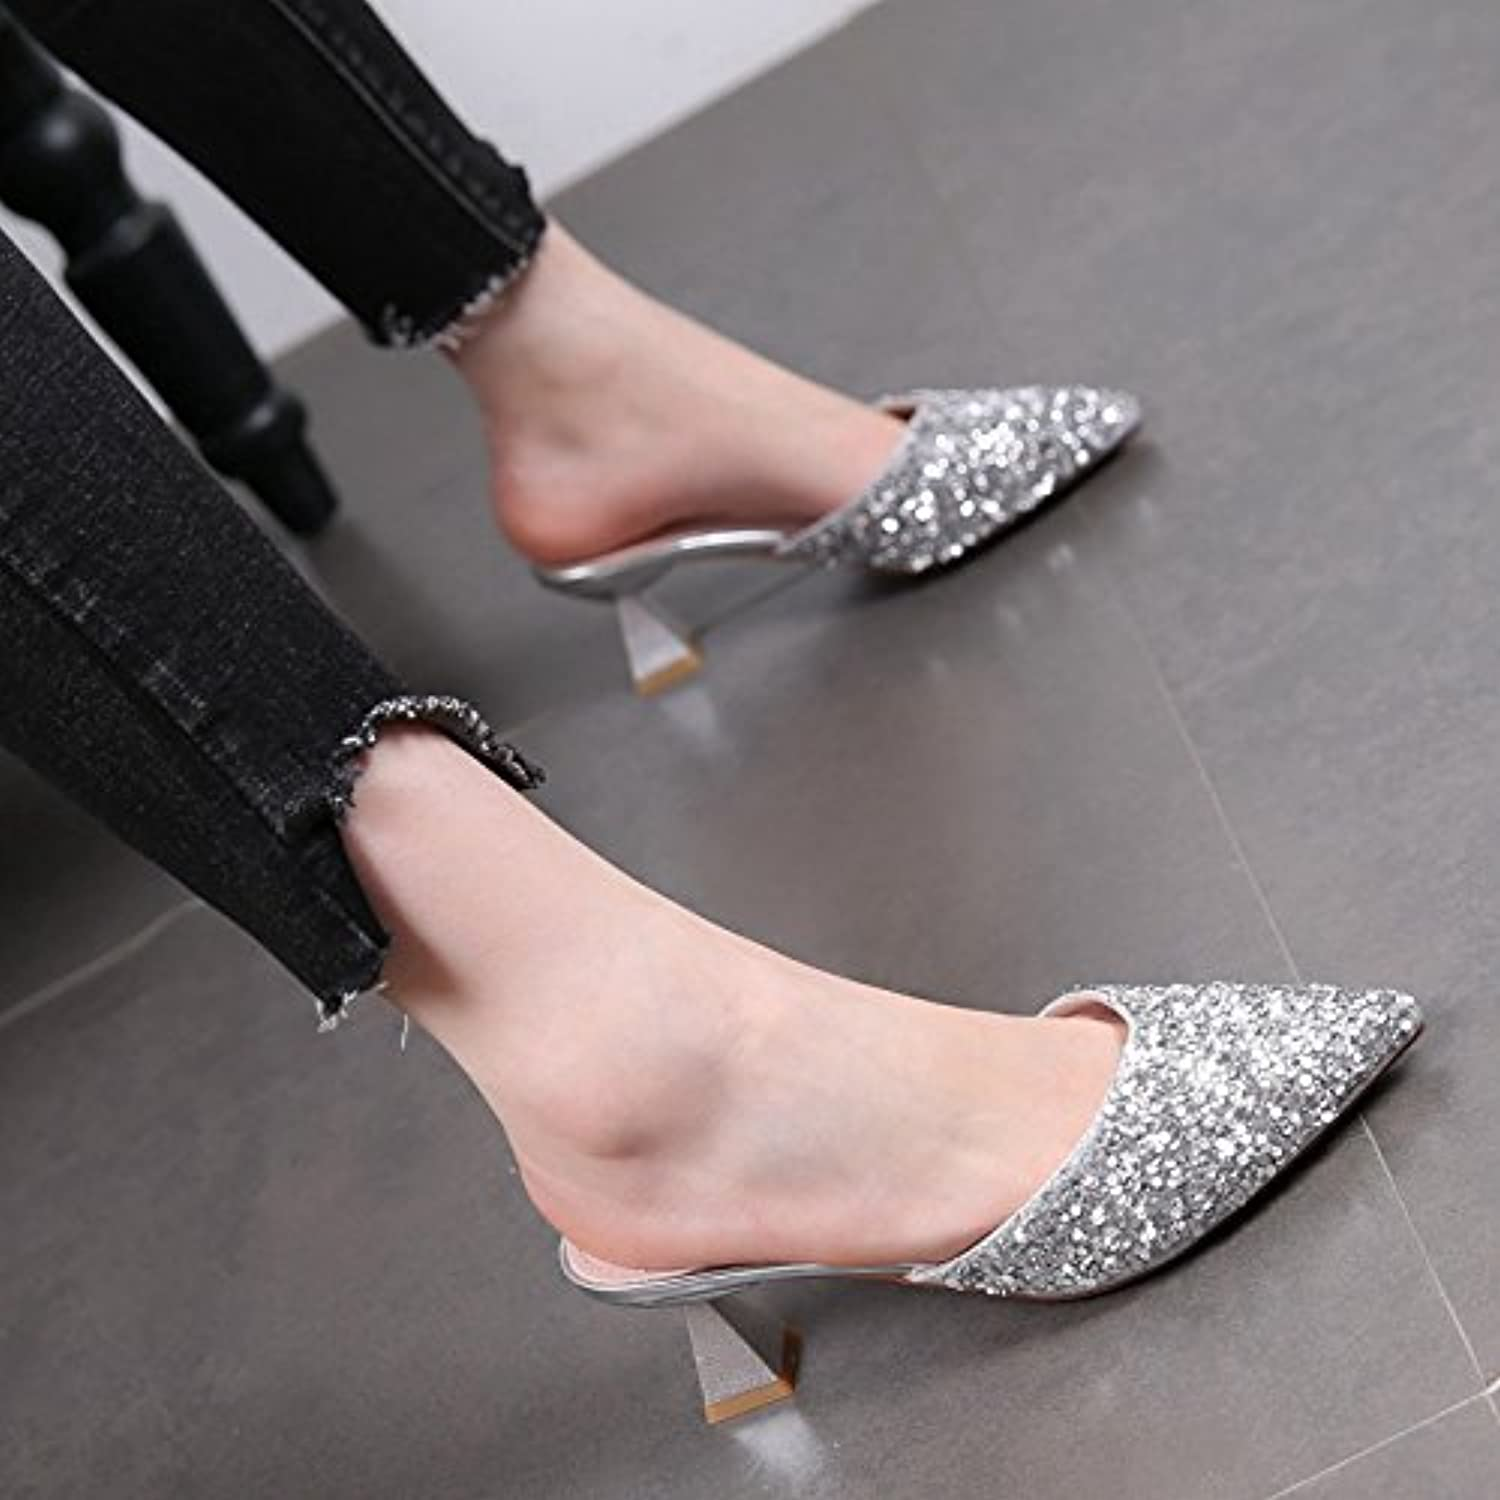 KPHY Sequins Slippers Middle Heels Slippers High-Heeled Shoes 5Cm Rough  Parent Rough Heels Pointed Toes Sandals Summer Baotou Cold Hauling  B07DBP459C Parent ... abee94abe1a